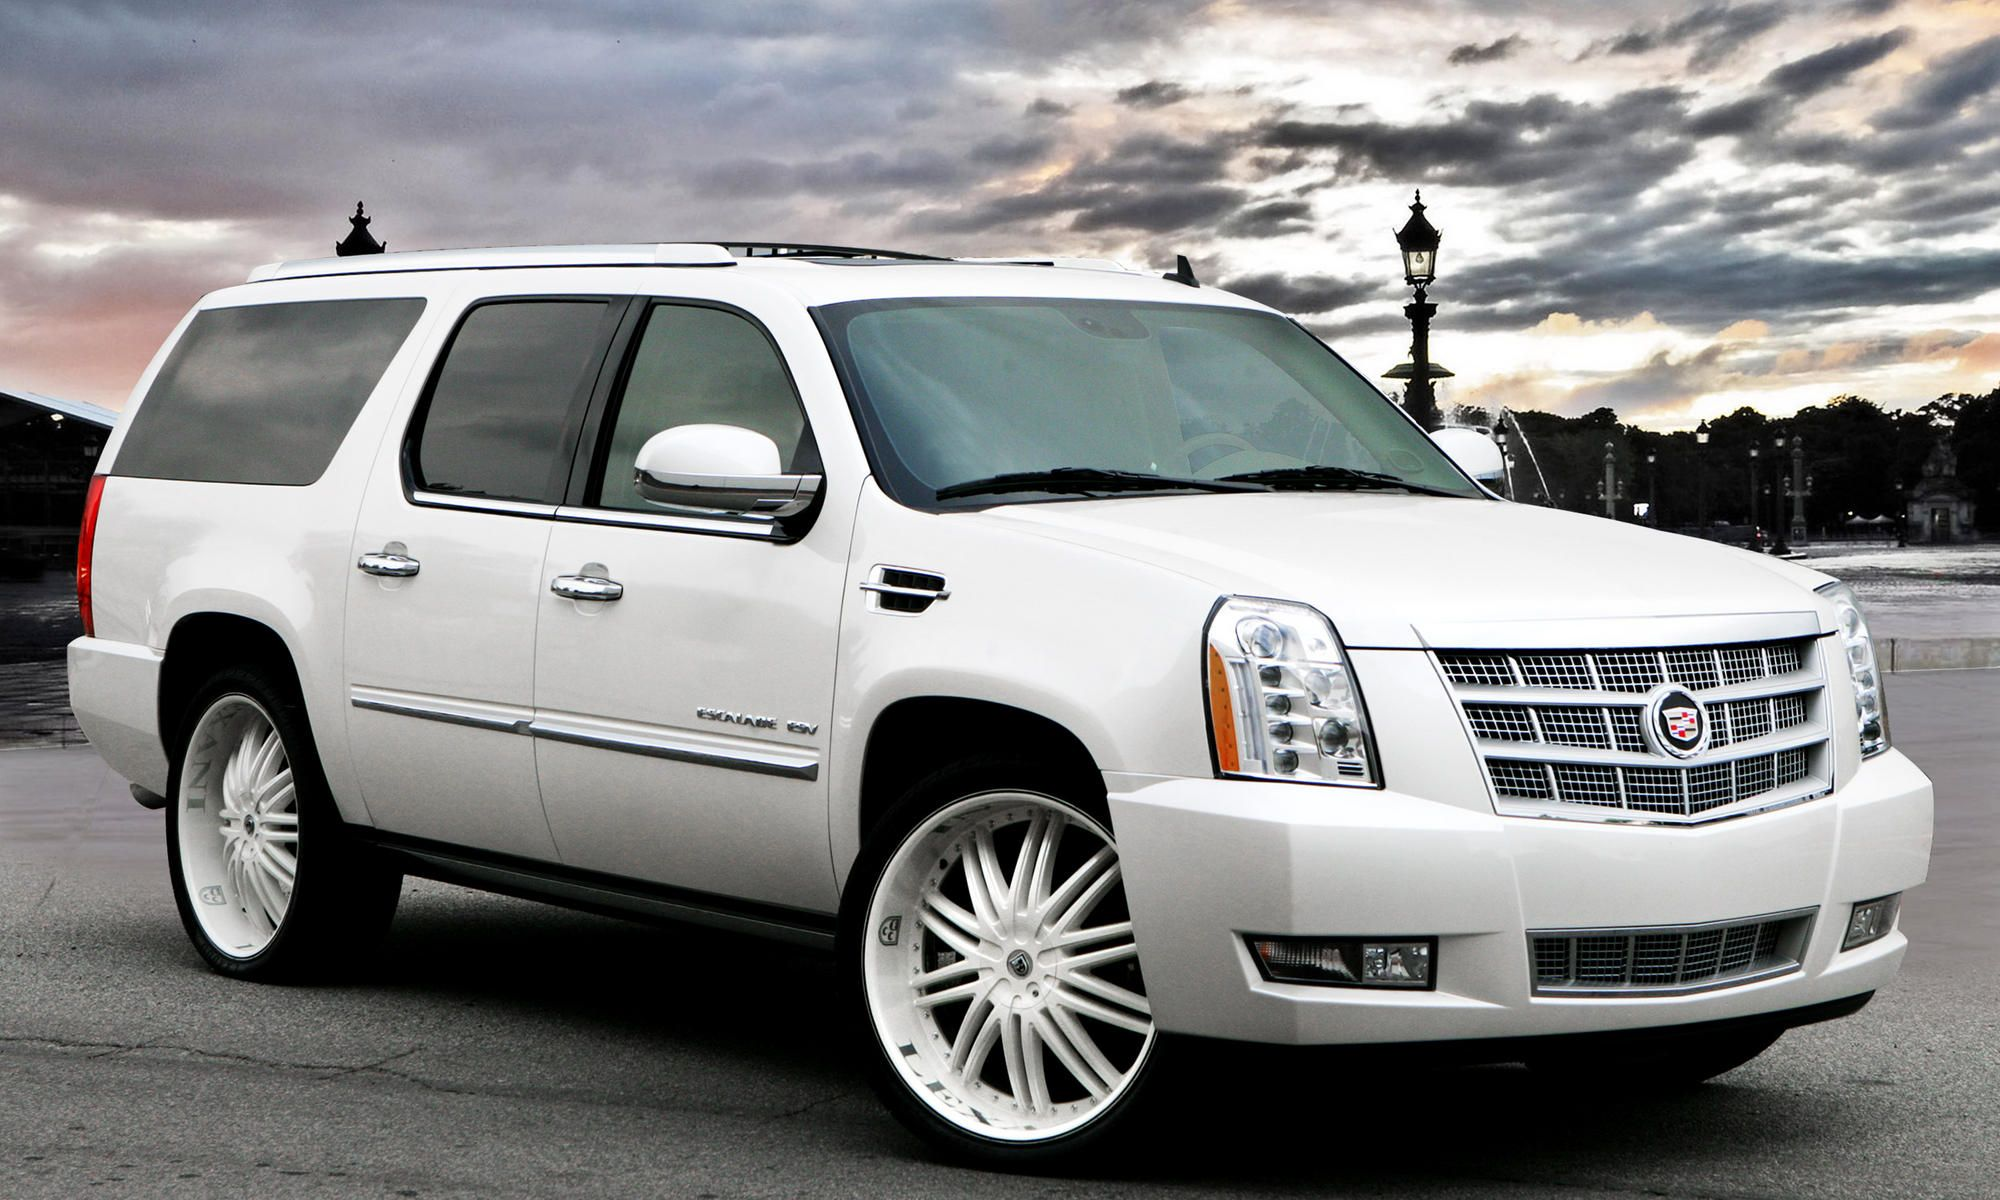 small resolution of lexani wheels the leader in custom luxury wheels 2011 white cadillac escalade with custom white lx 10 wheels